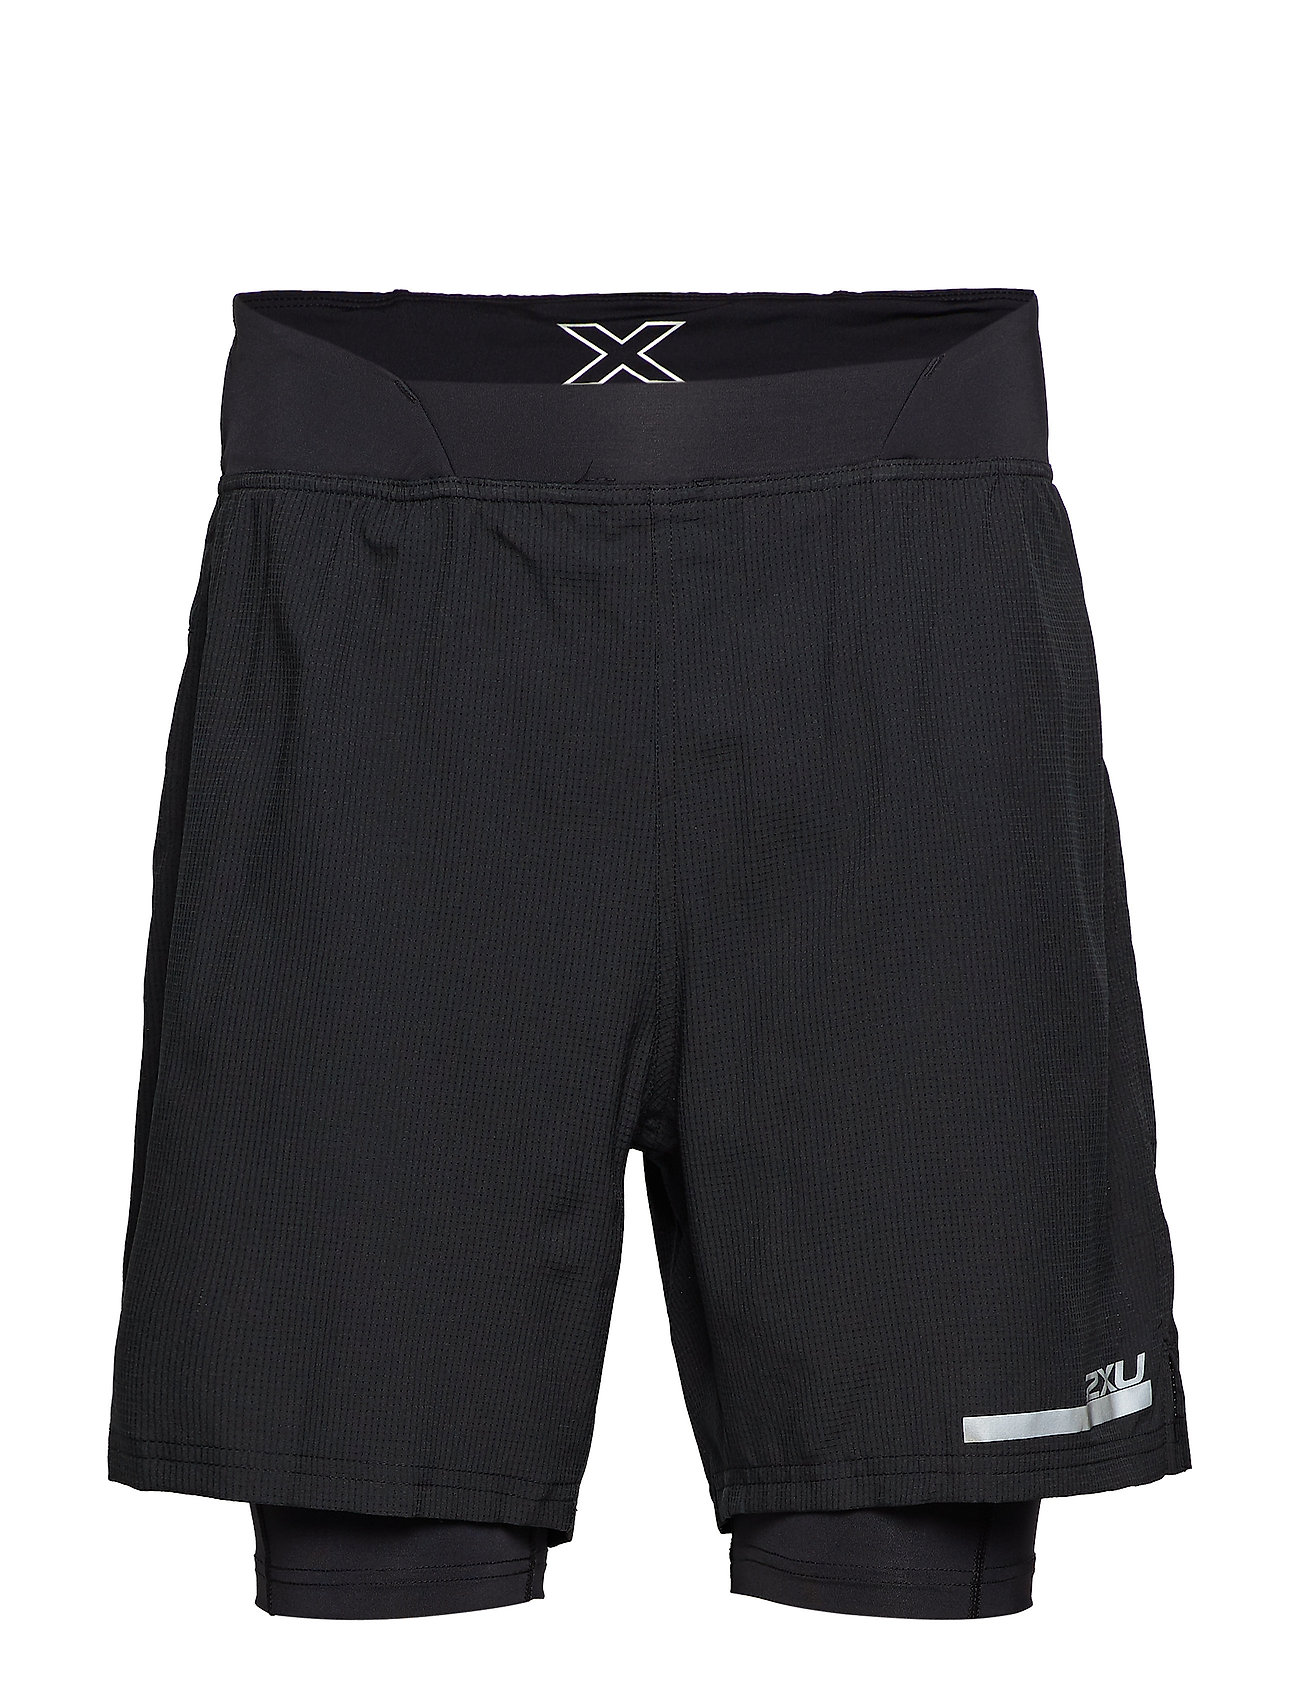 "2XU Run 2 in 1 Comp 7"" Shorts-M - BLACK/SILVER"